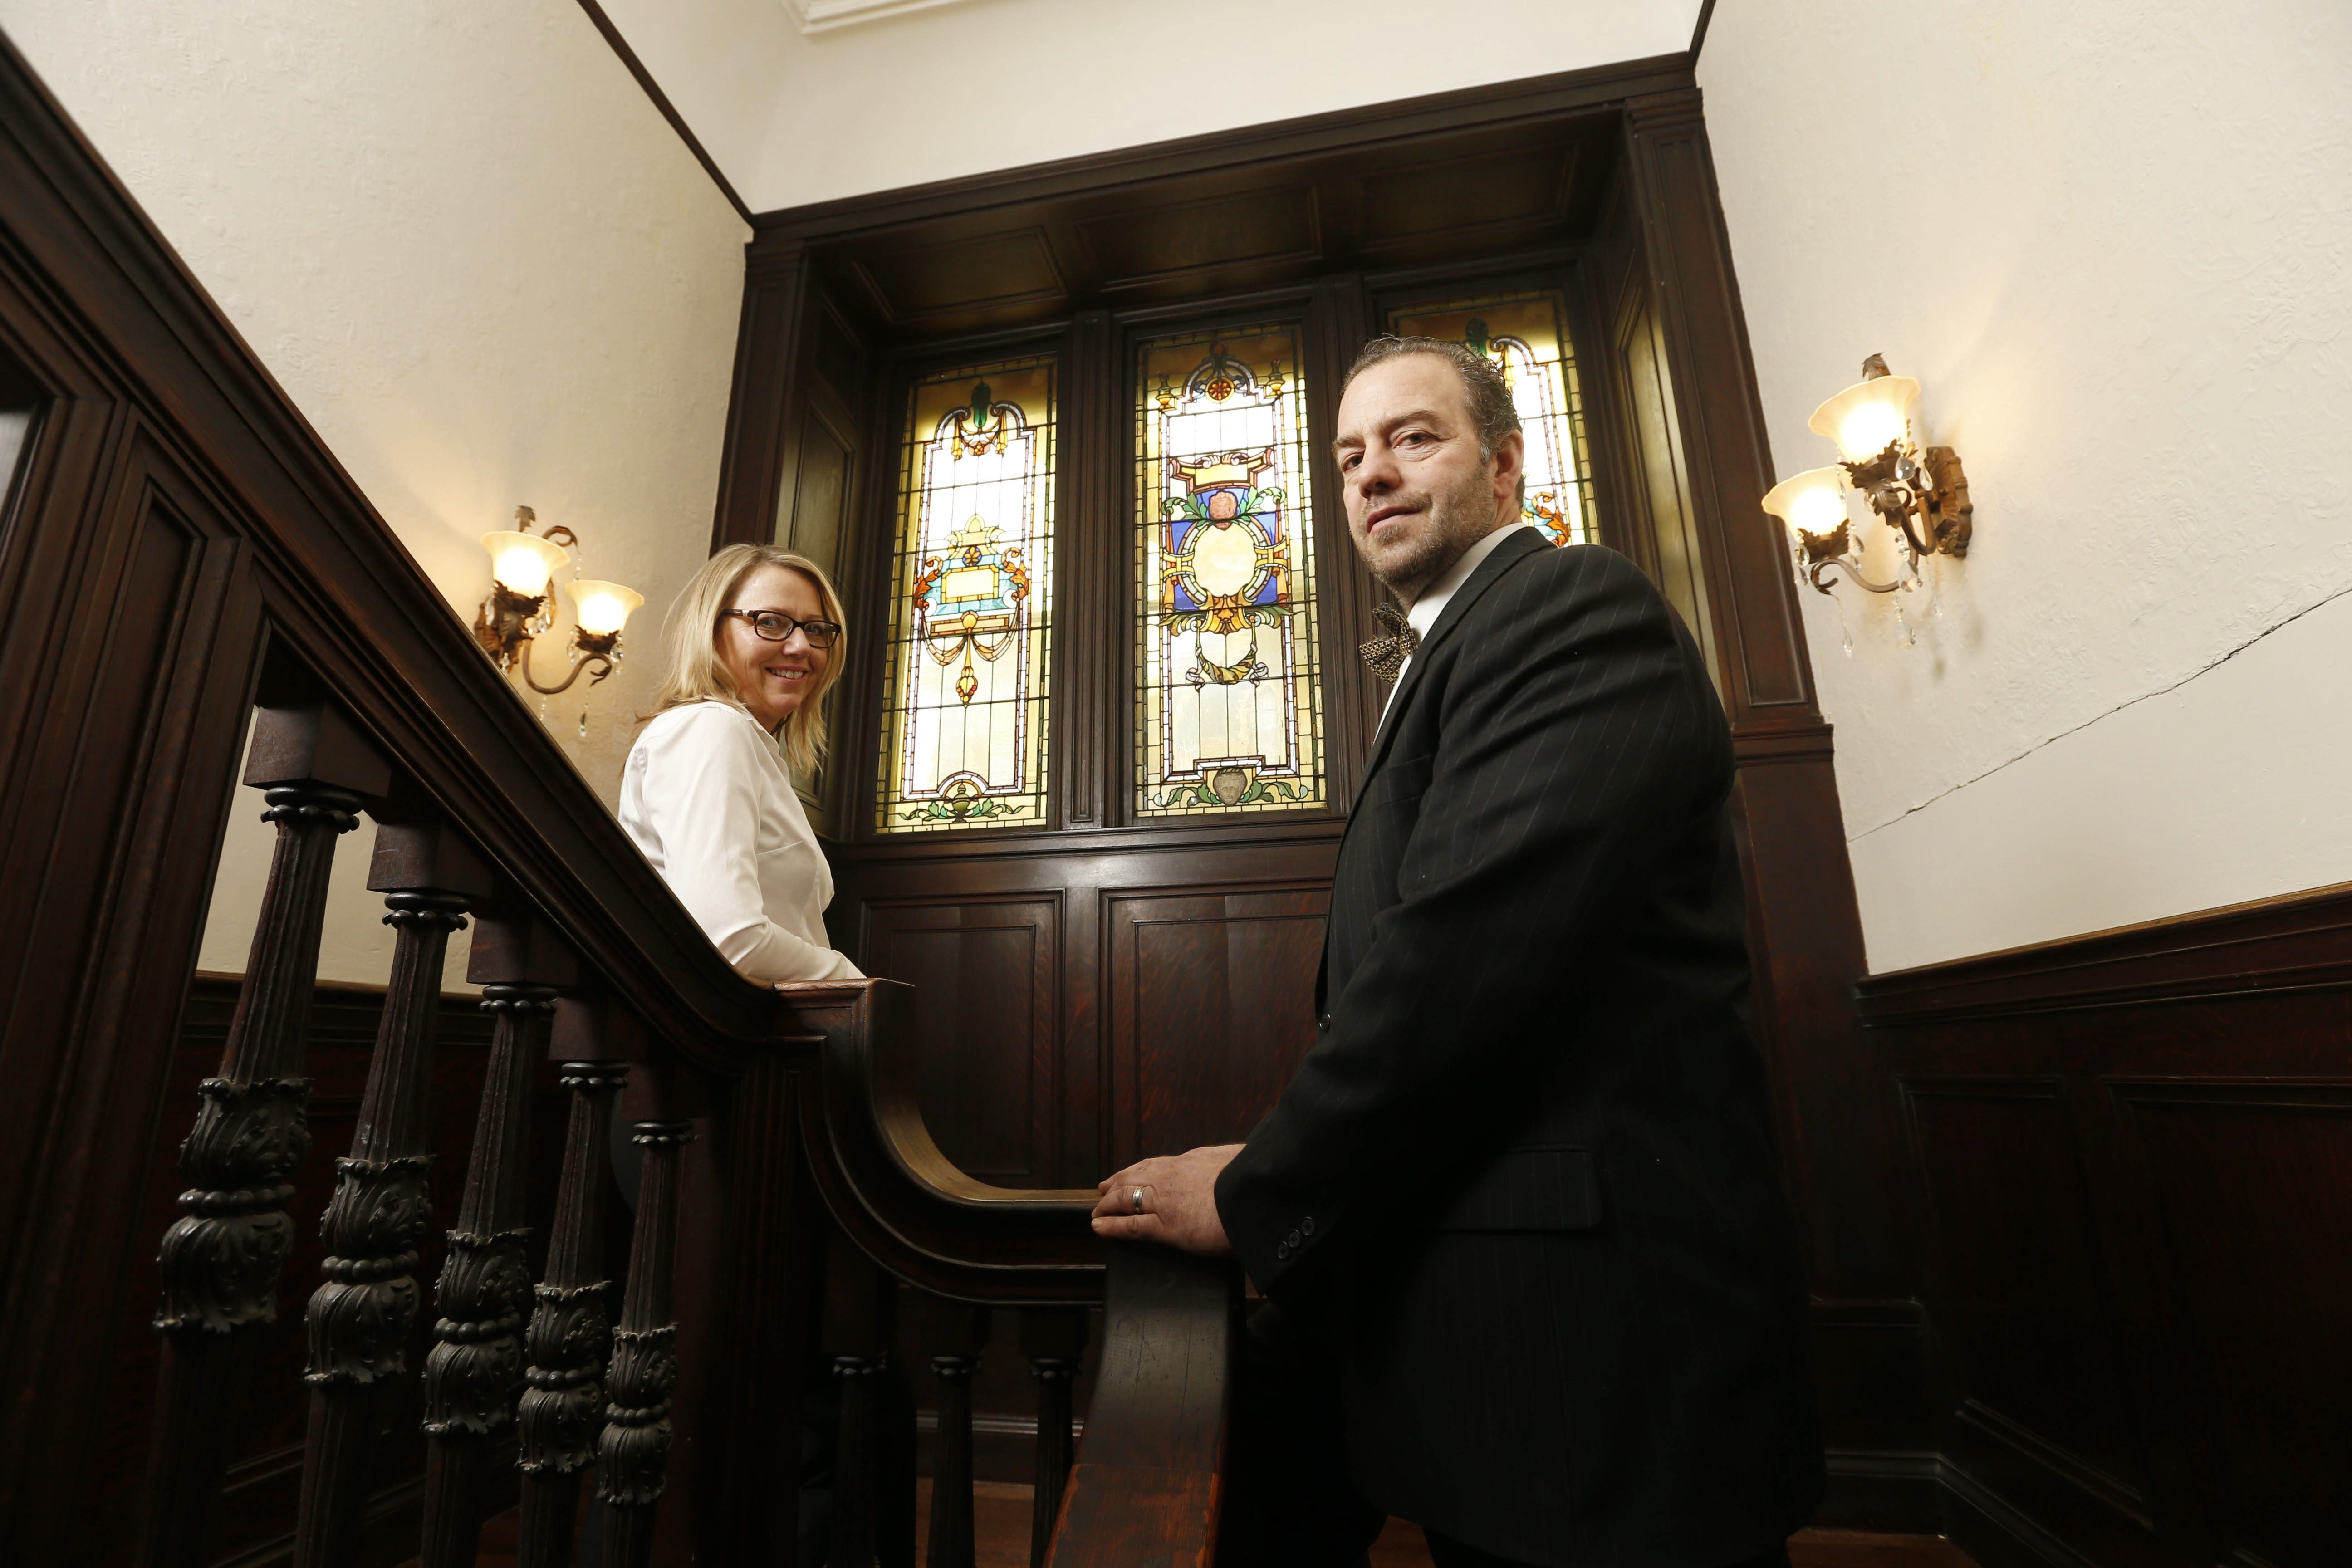 Joseph and Ellen Lettieri bought the once-grand Hewitt mansion at city auction three years ago for $183,000.